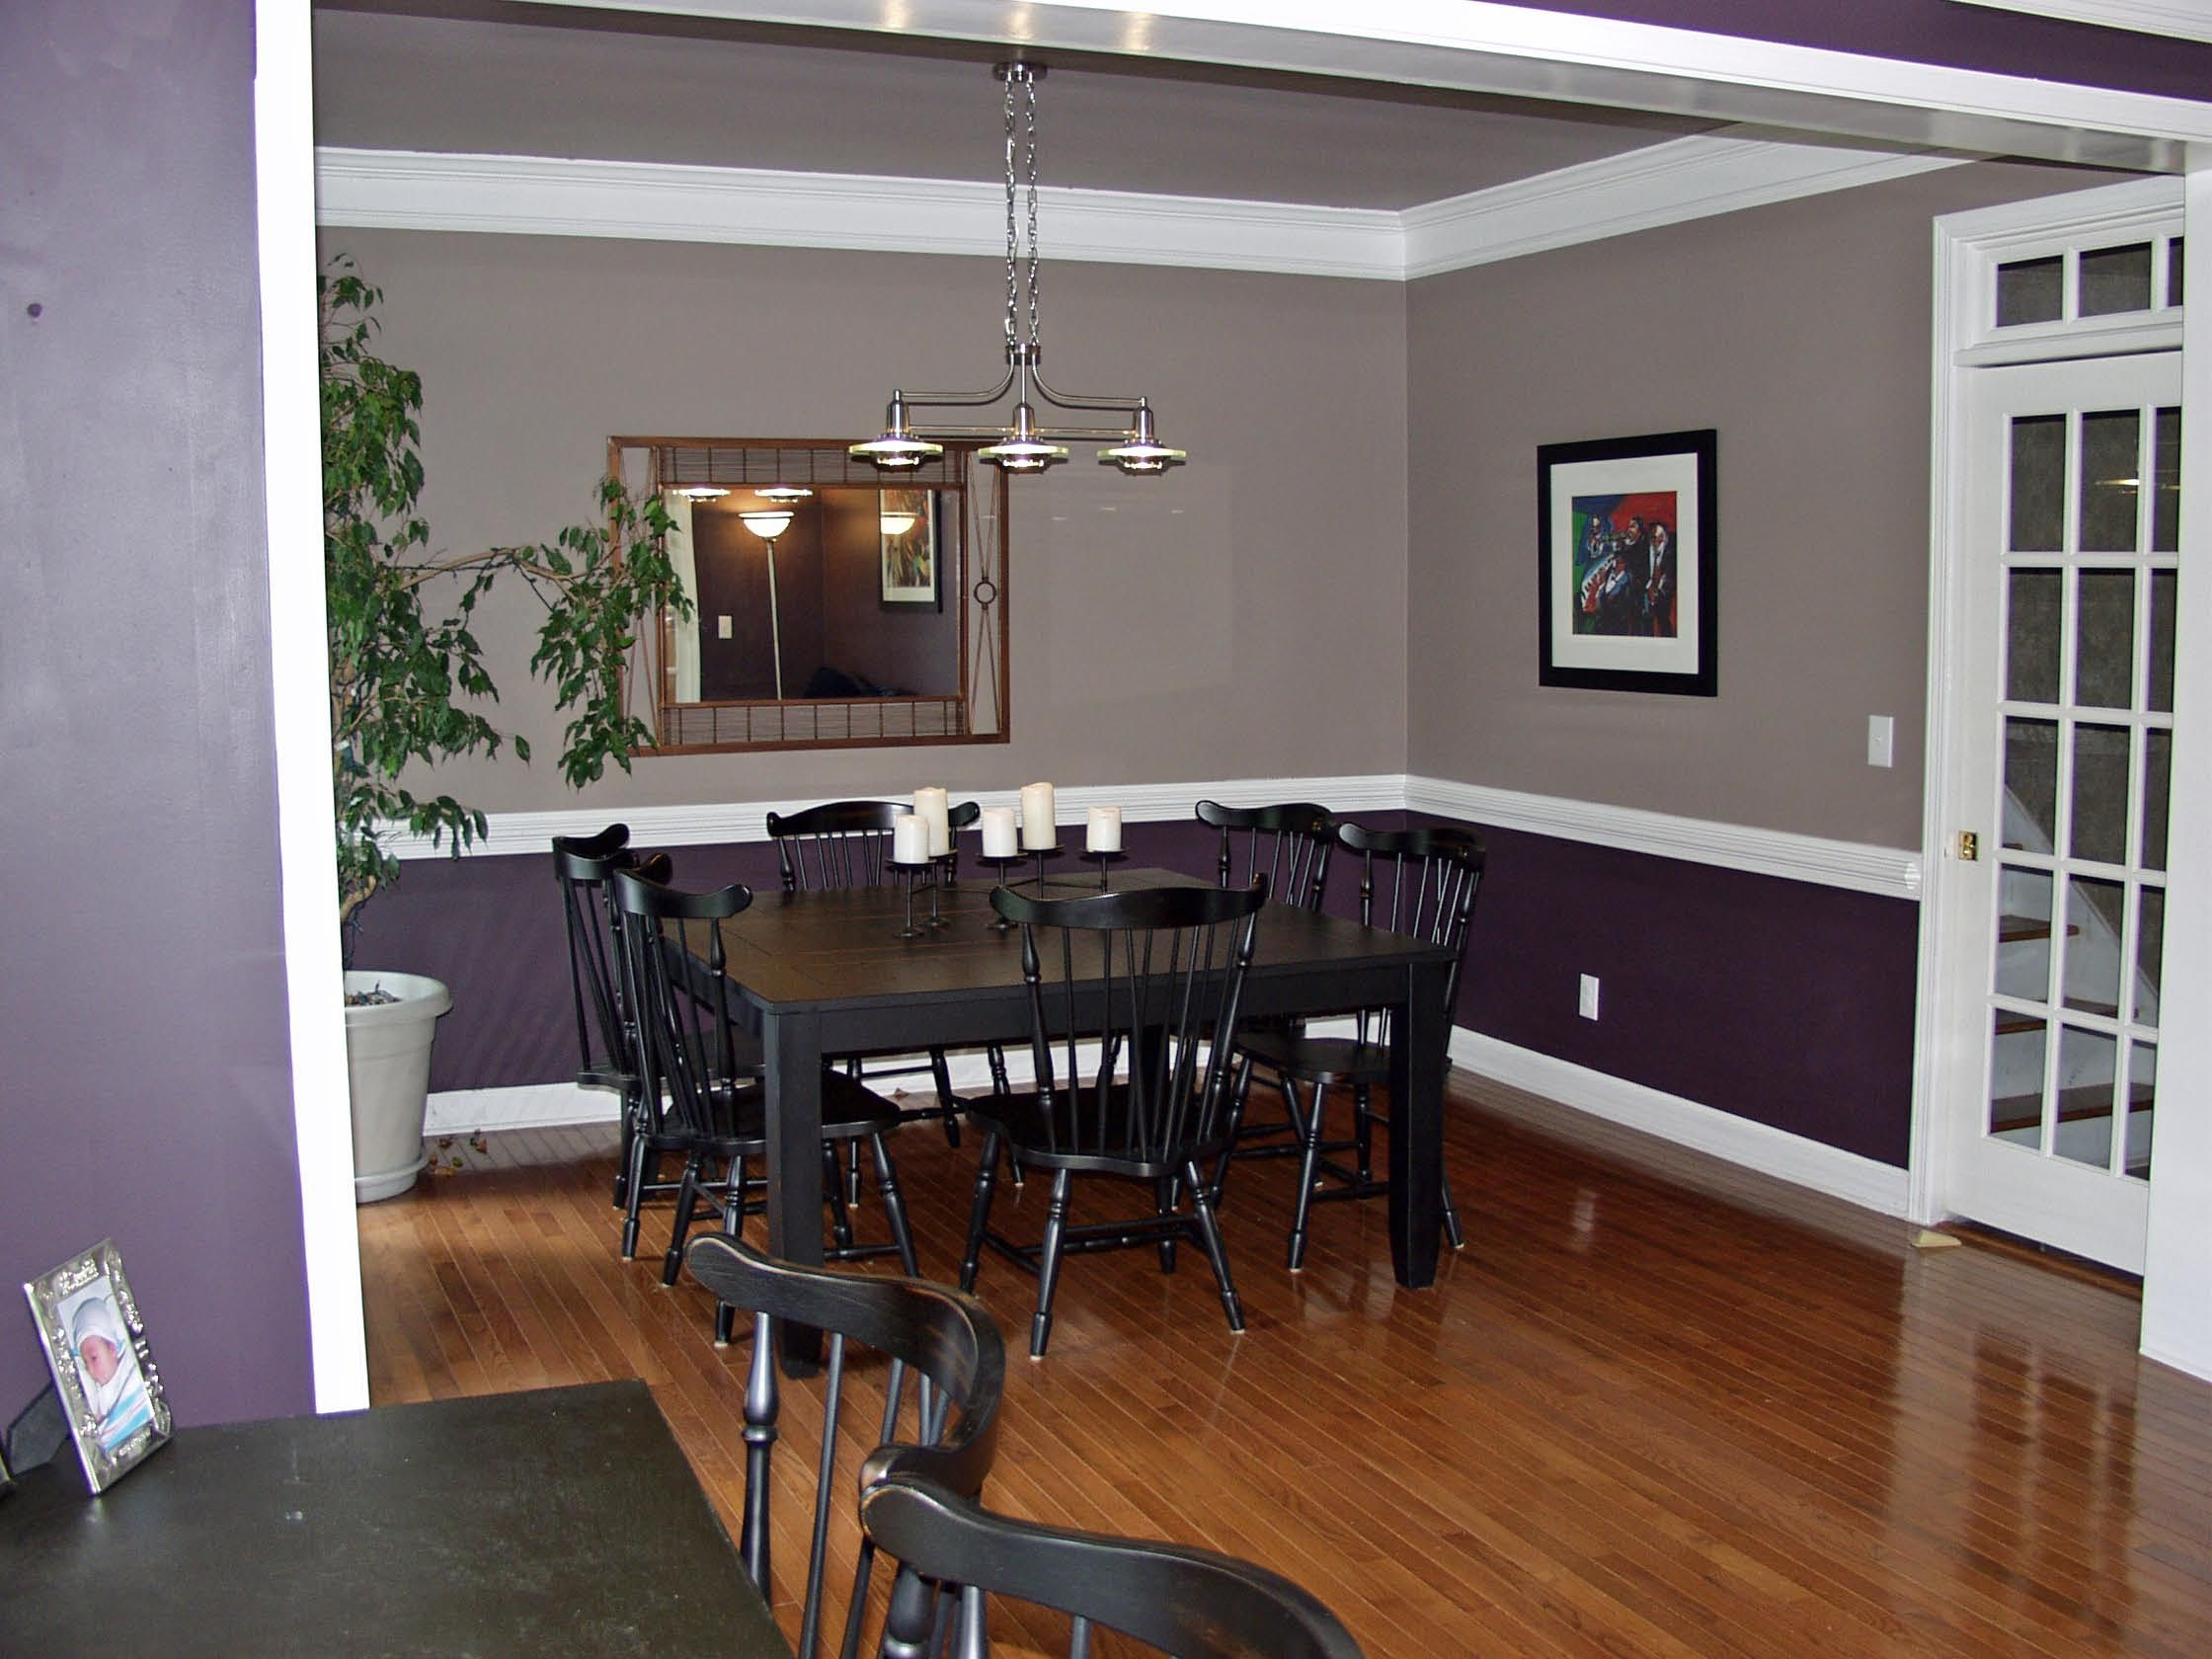 paint ideas for dining room dining room paint google search dining room paint dining room decor grey dining room 6942